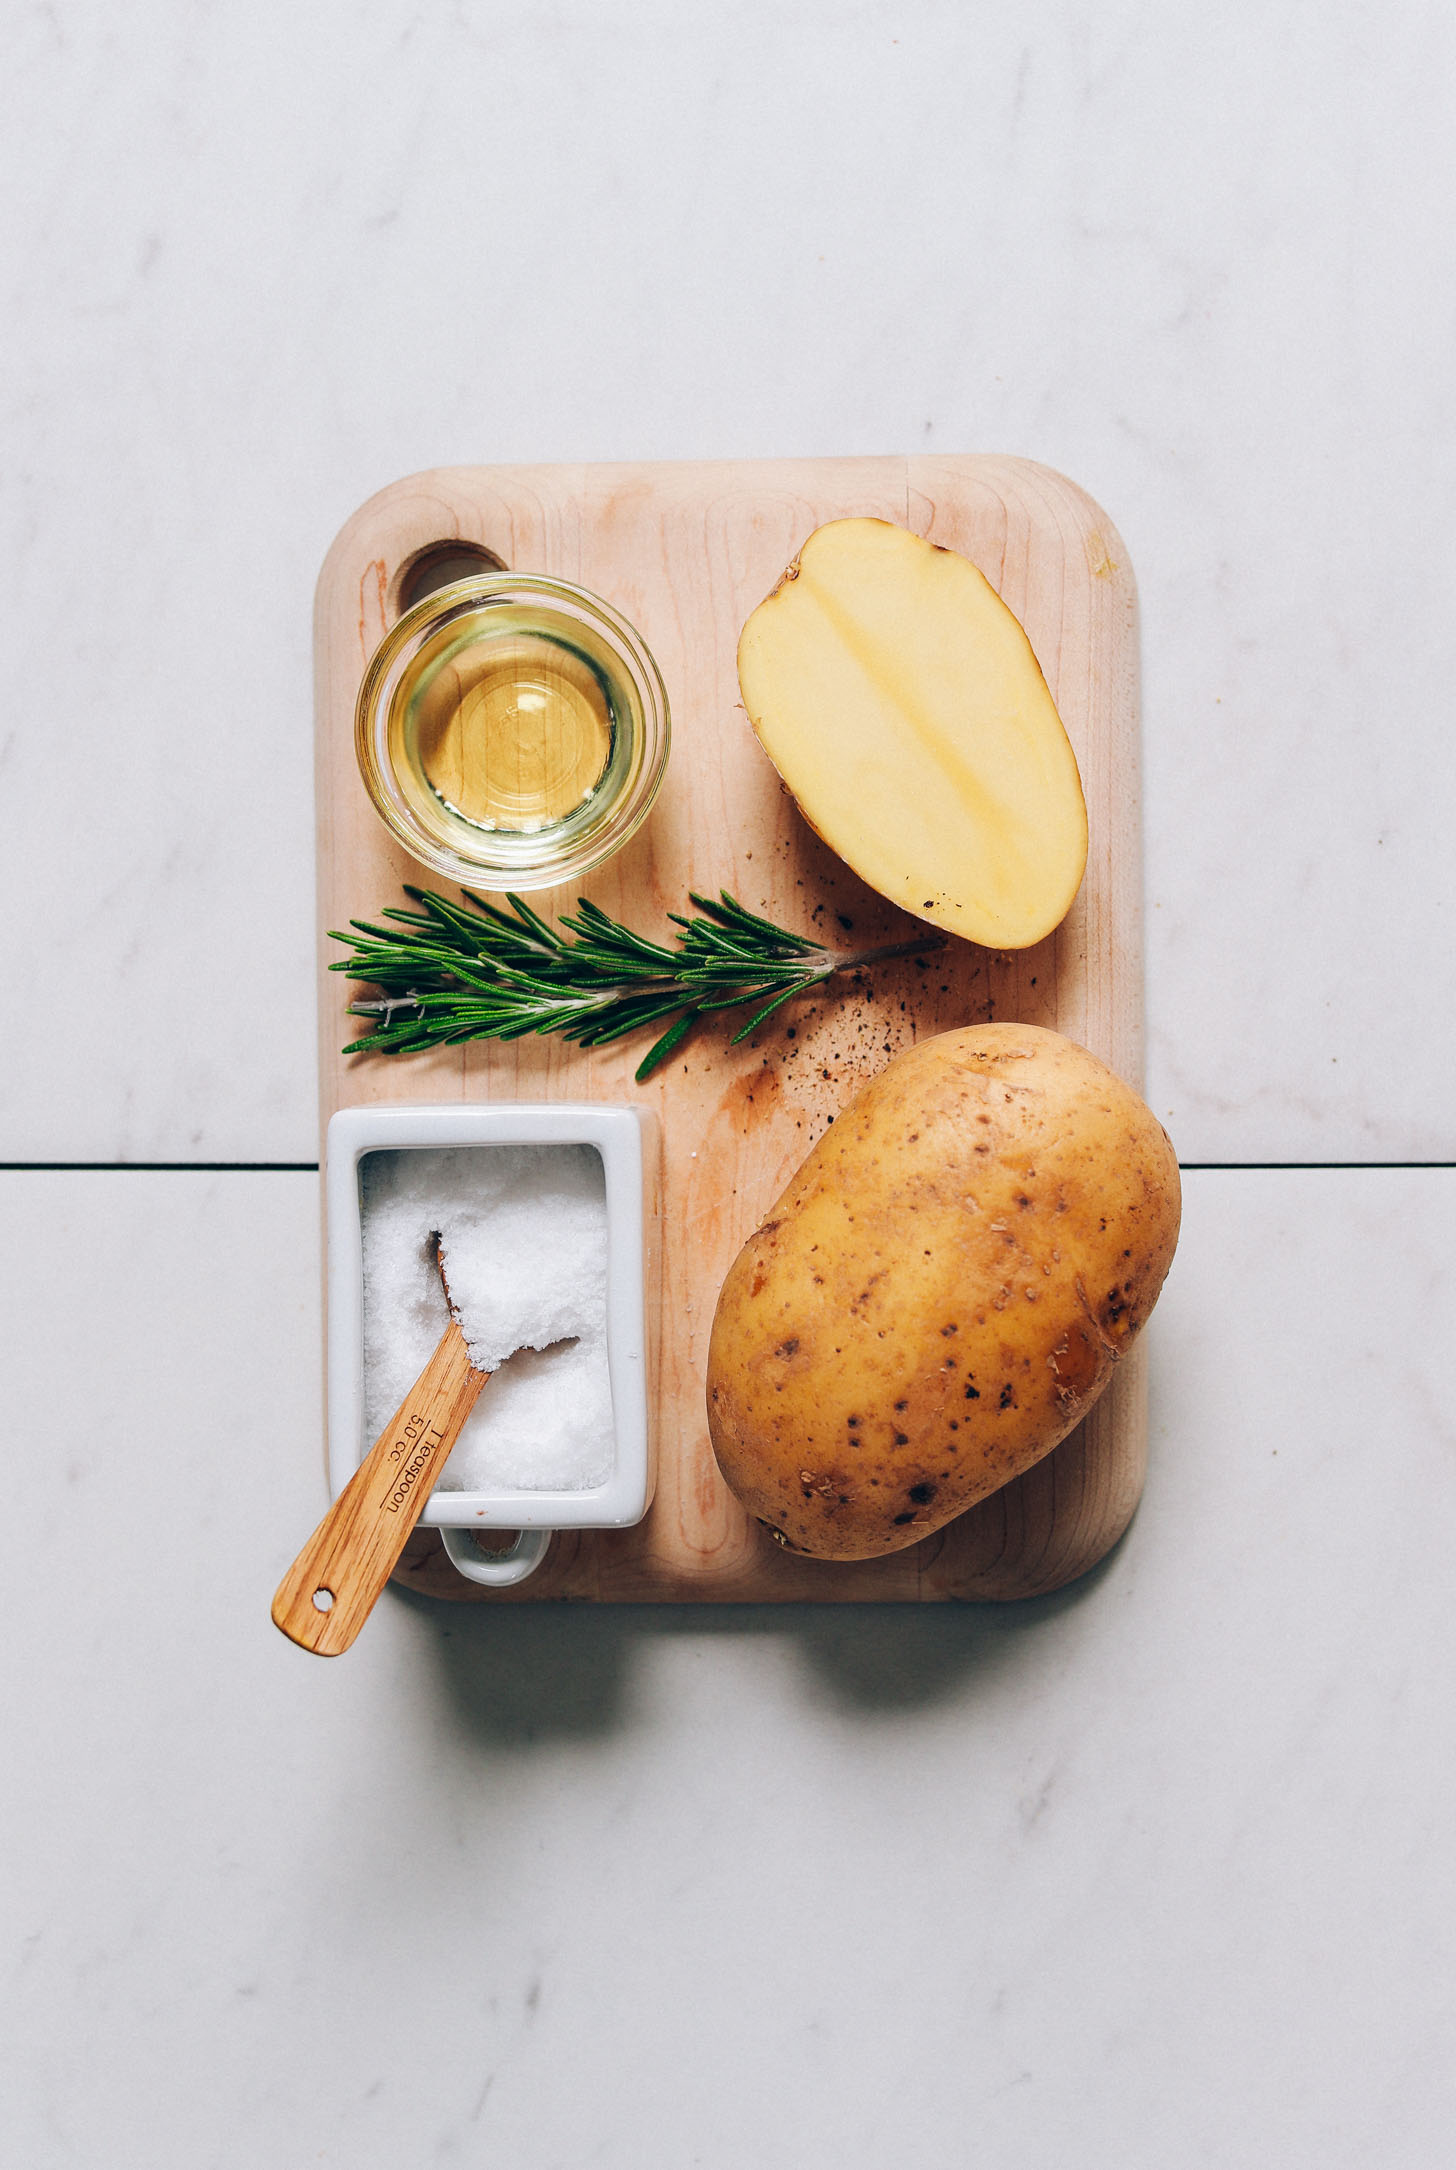 Small cutting board with gold potatoes, avocado oil, rosemary, and salt for making Oven Roasted Potatoes